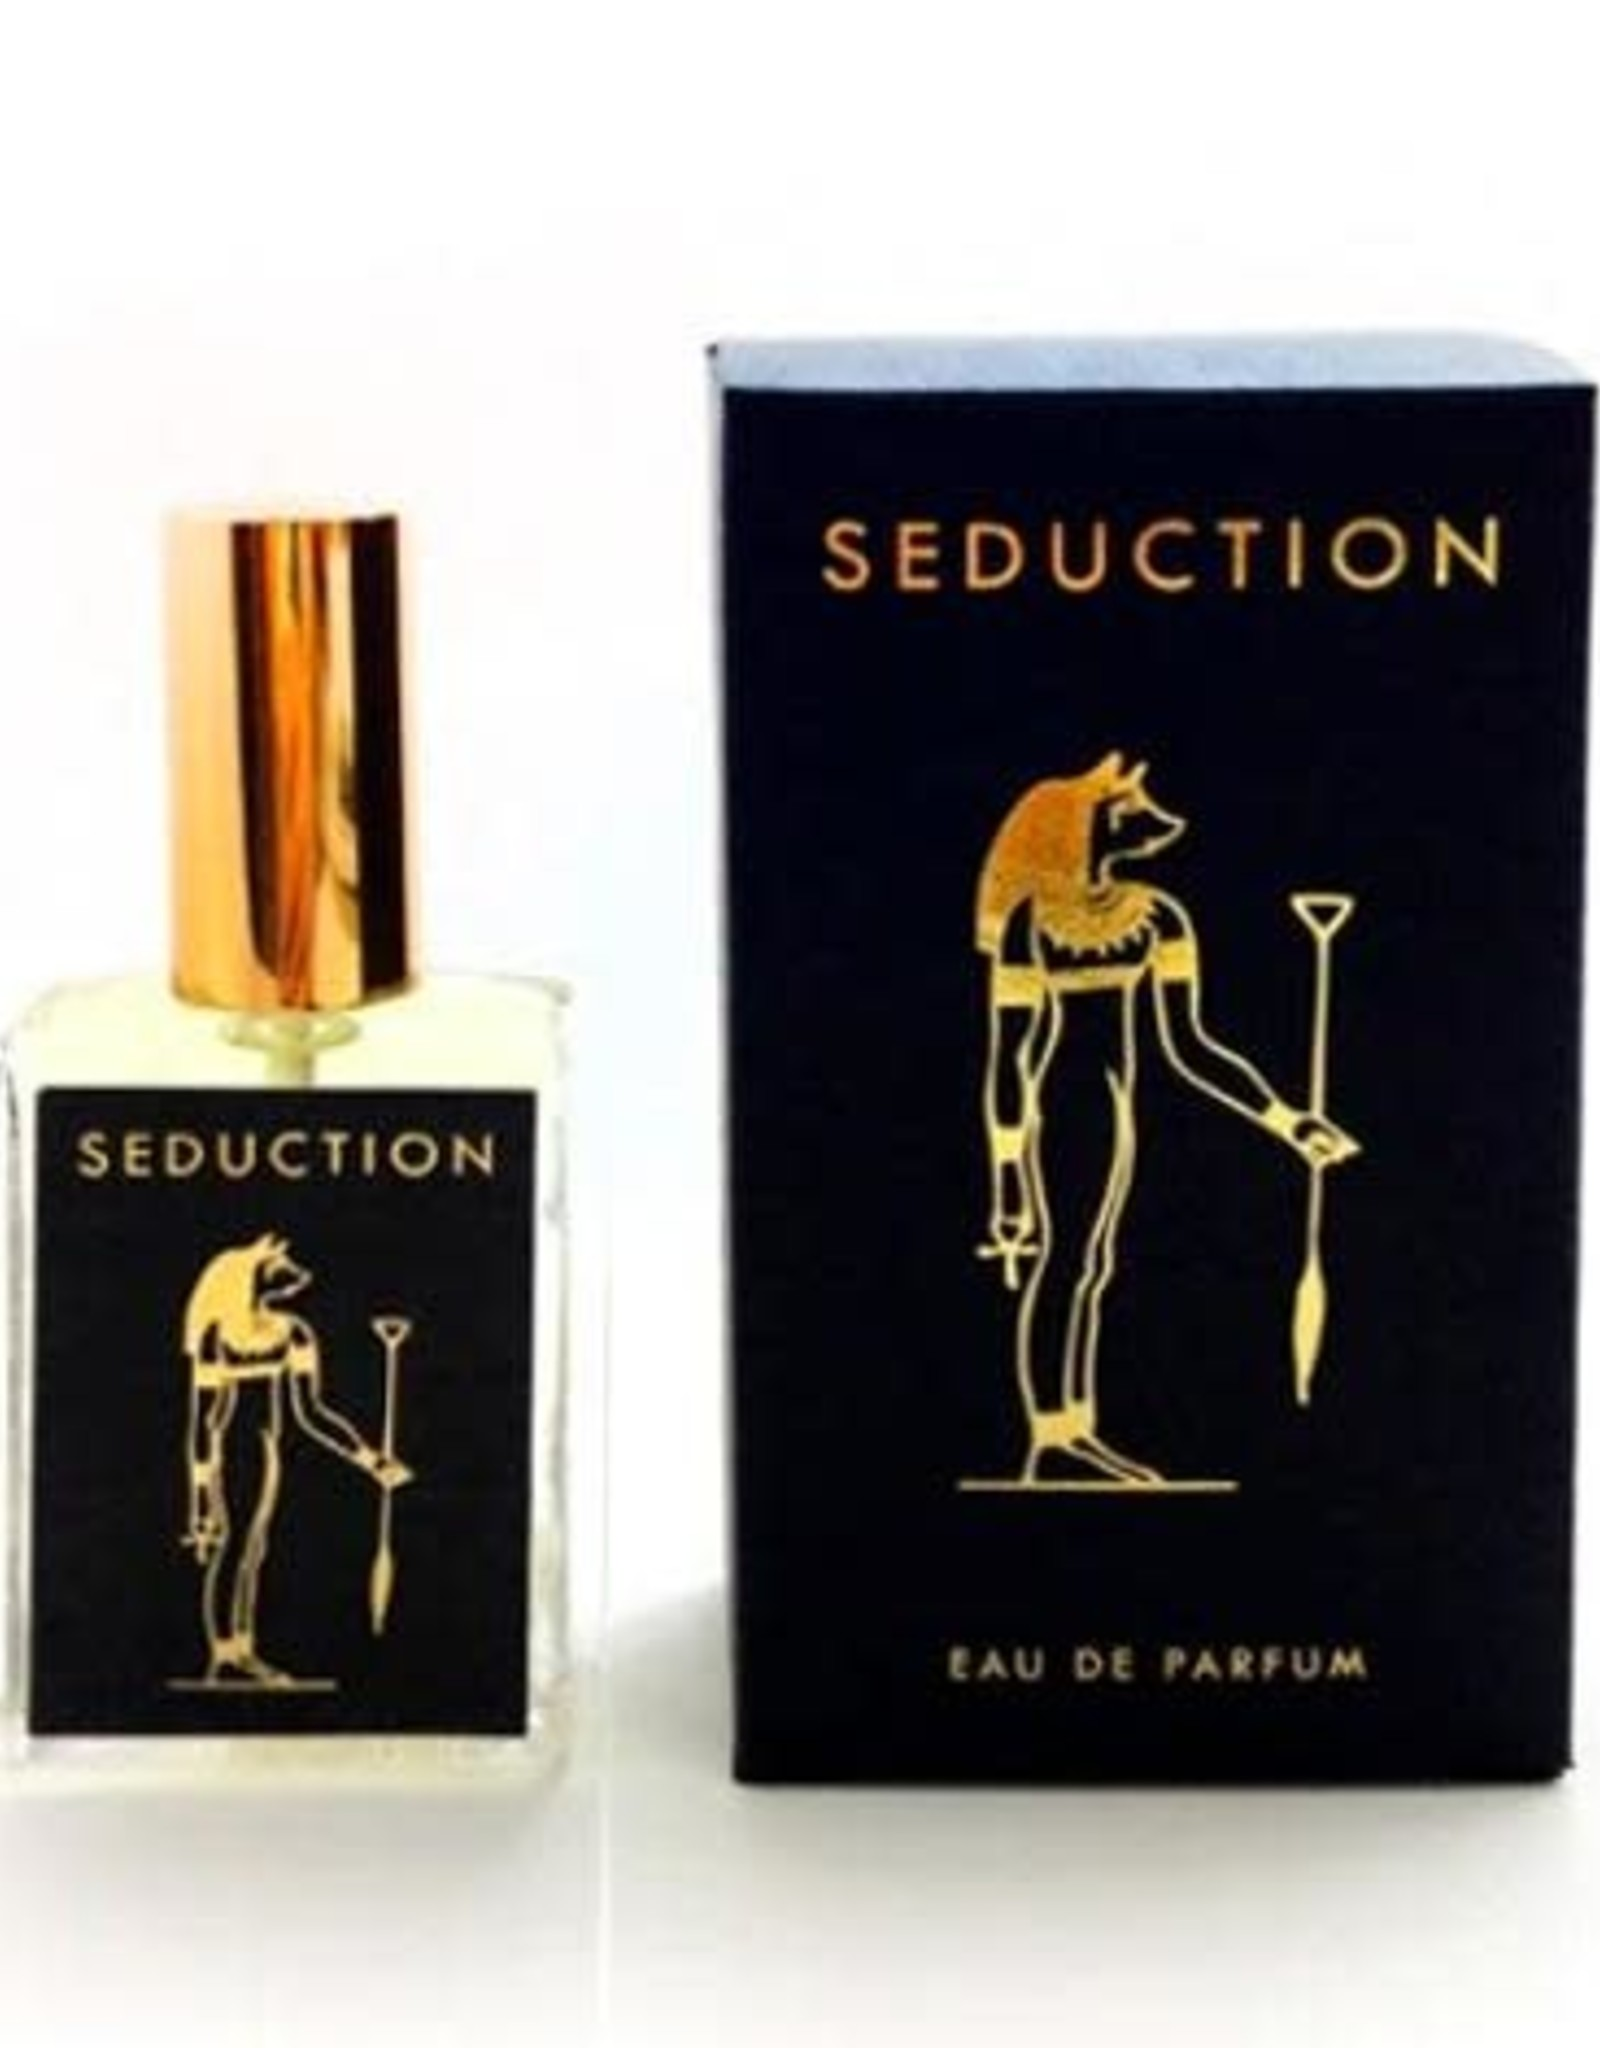 Spi-Gi Seduction Perfume